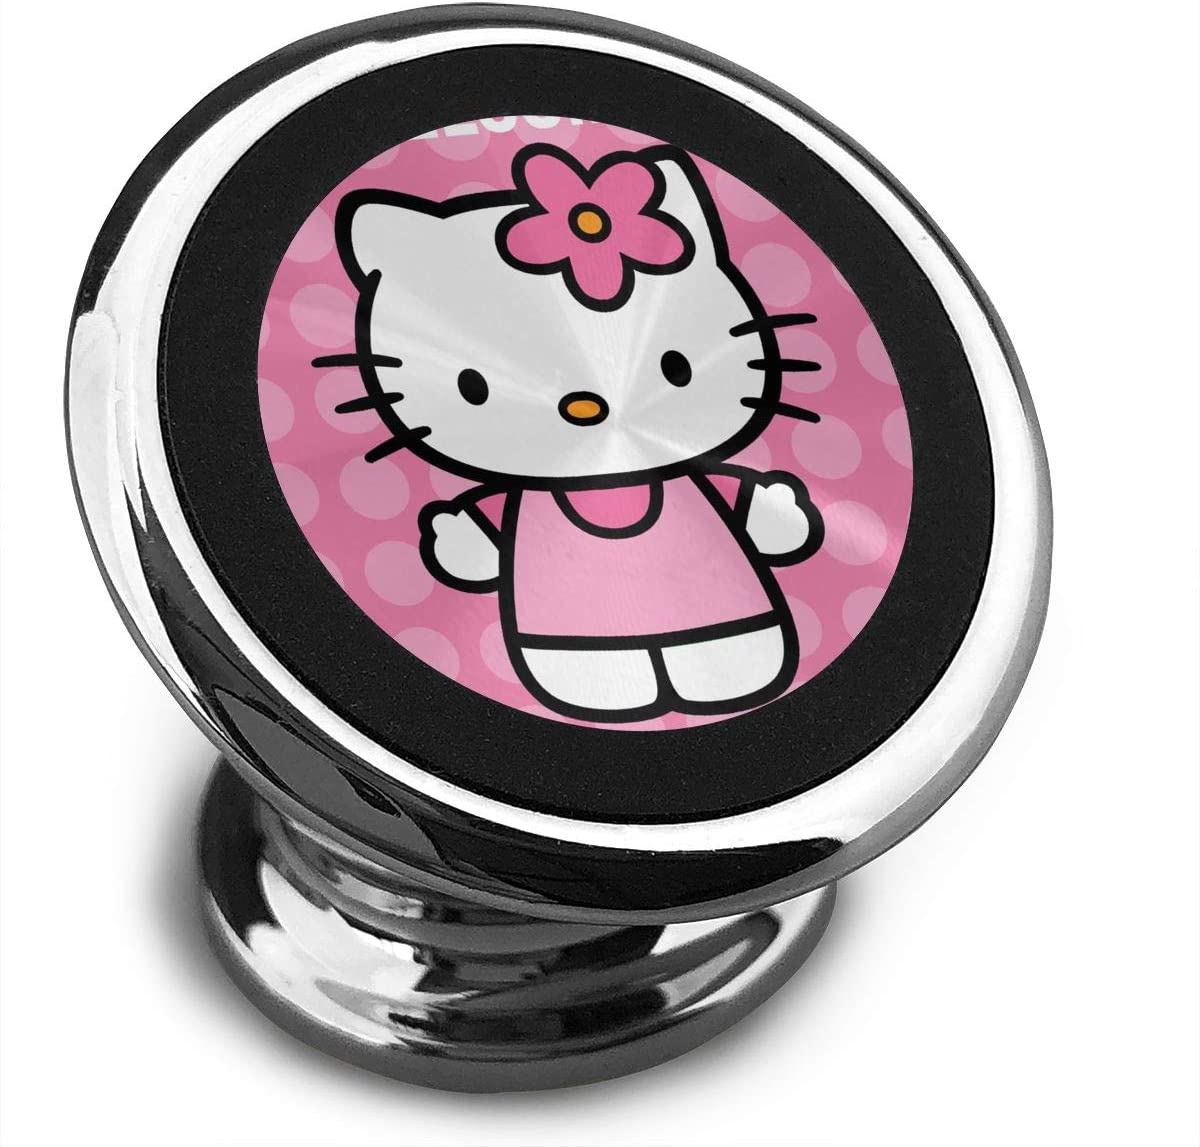 Magnetic Car Phone Holder Stylish Welcome Hello Kitty 360 Degree Rotating Stand Grip Mount Suit for Any Phone iPhone